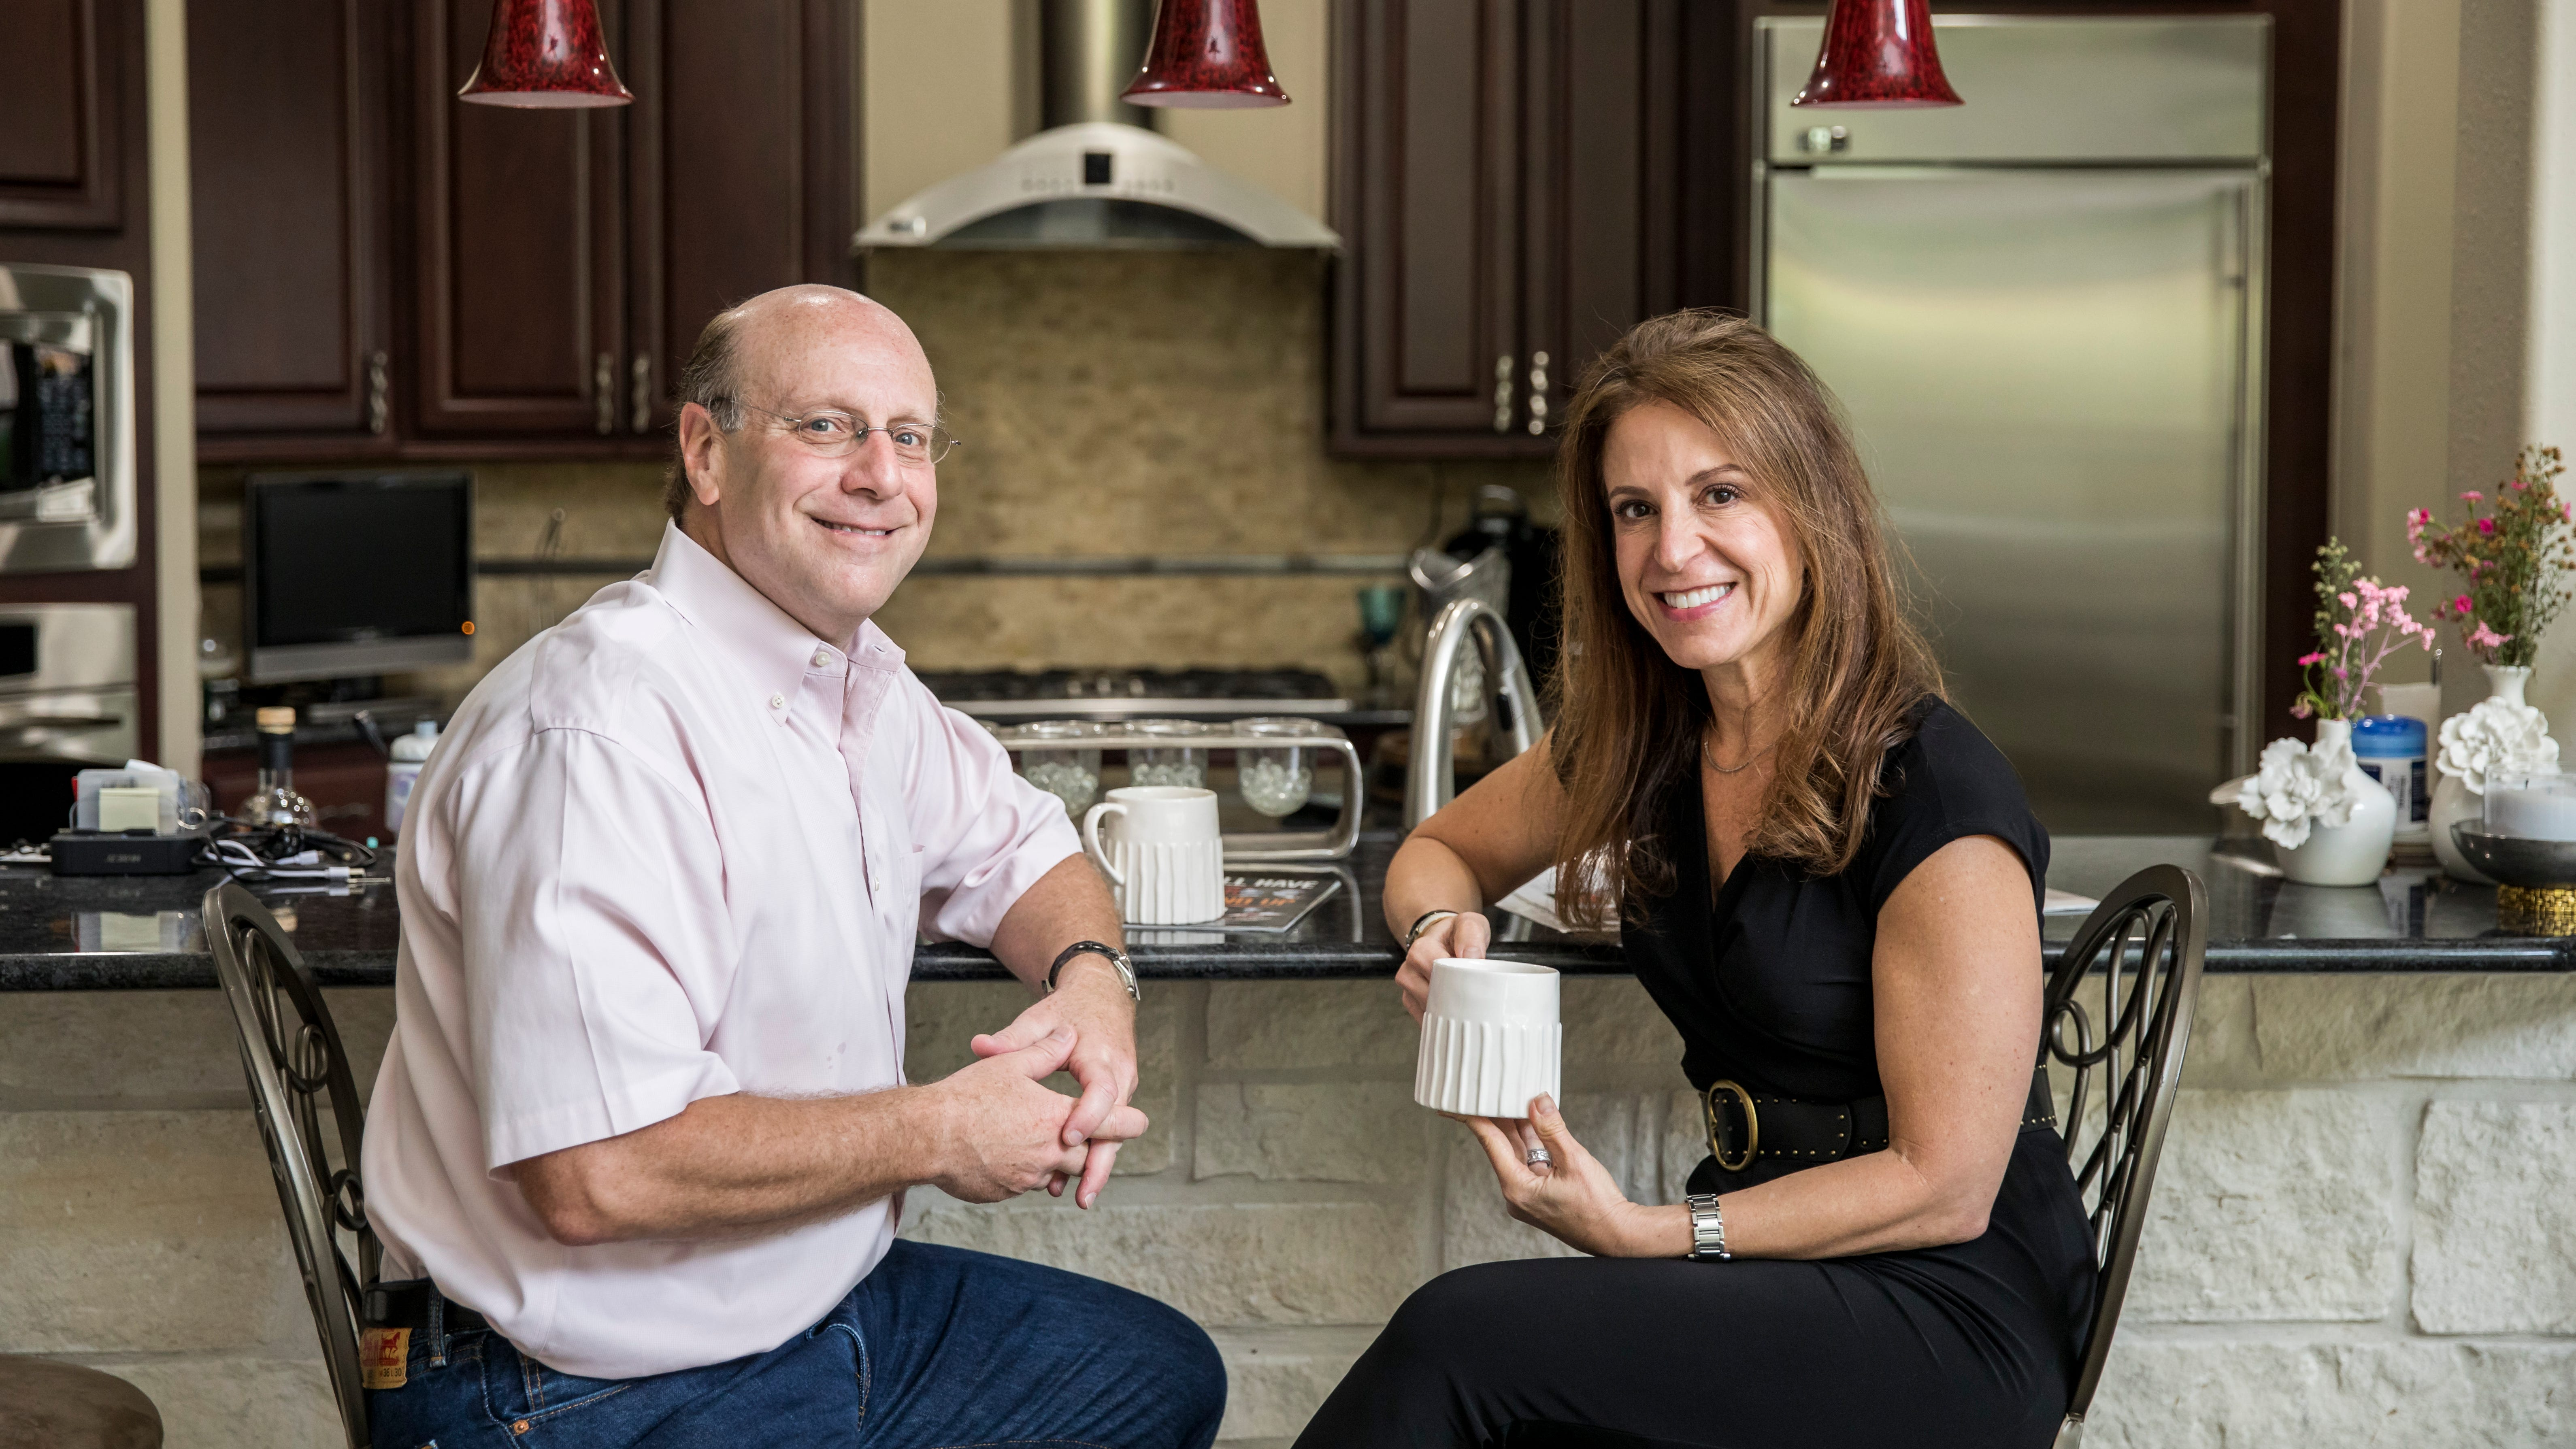 Jeff and Shelly Levy plan to stay in their 3,900-square-foot four-bedroom house in the Memorial section of Houston.